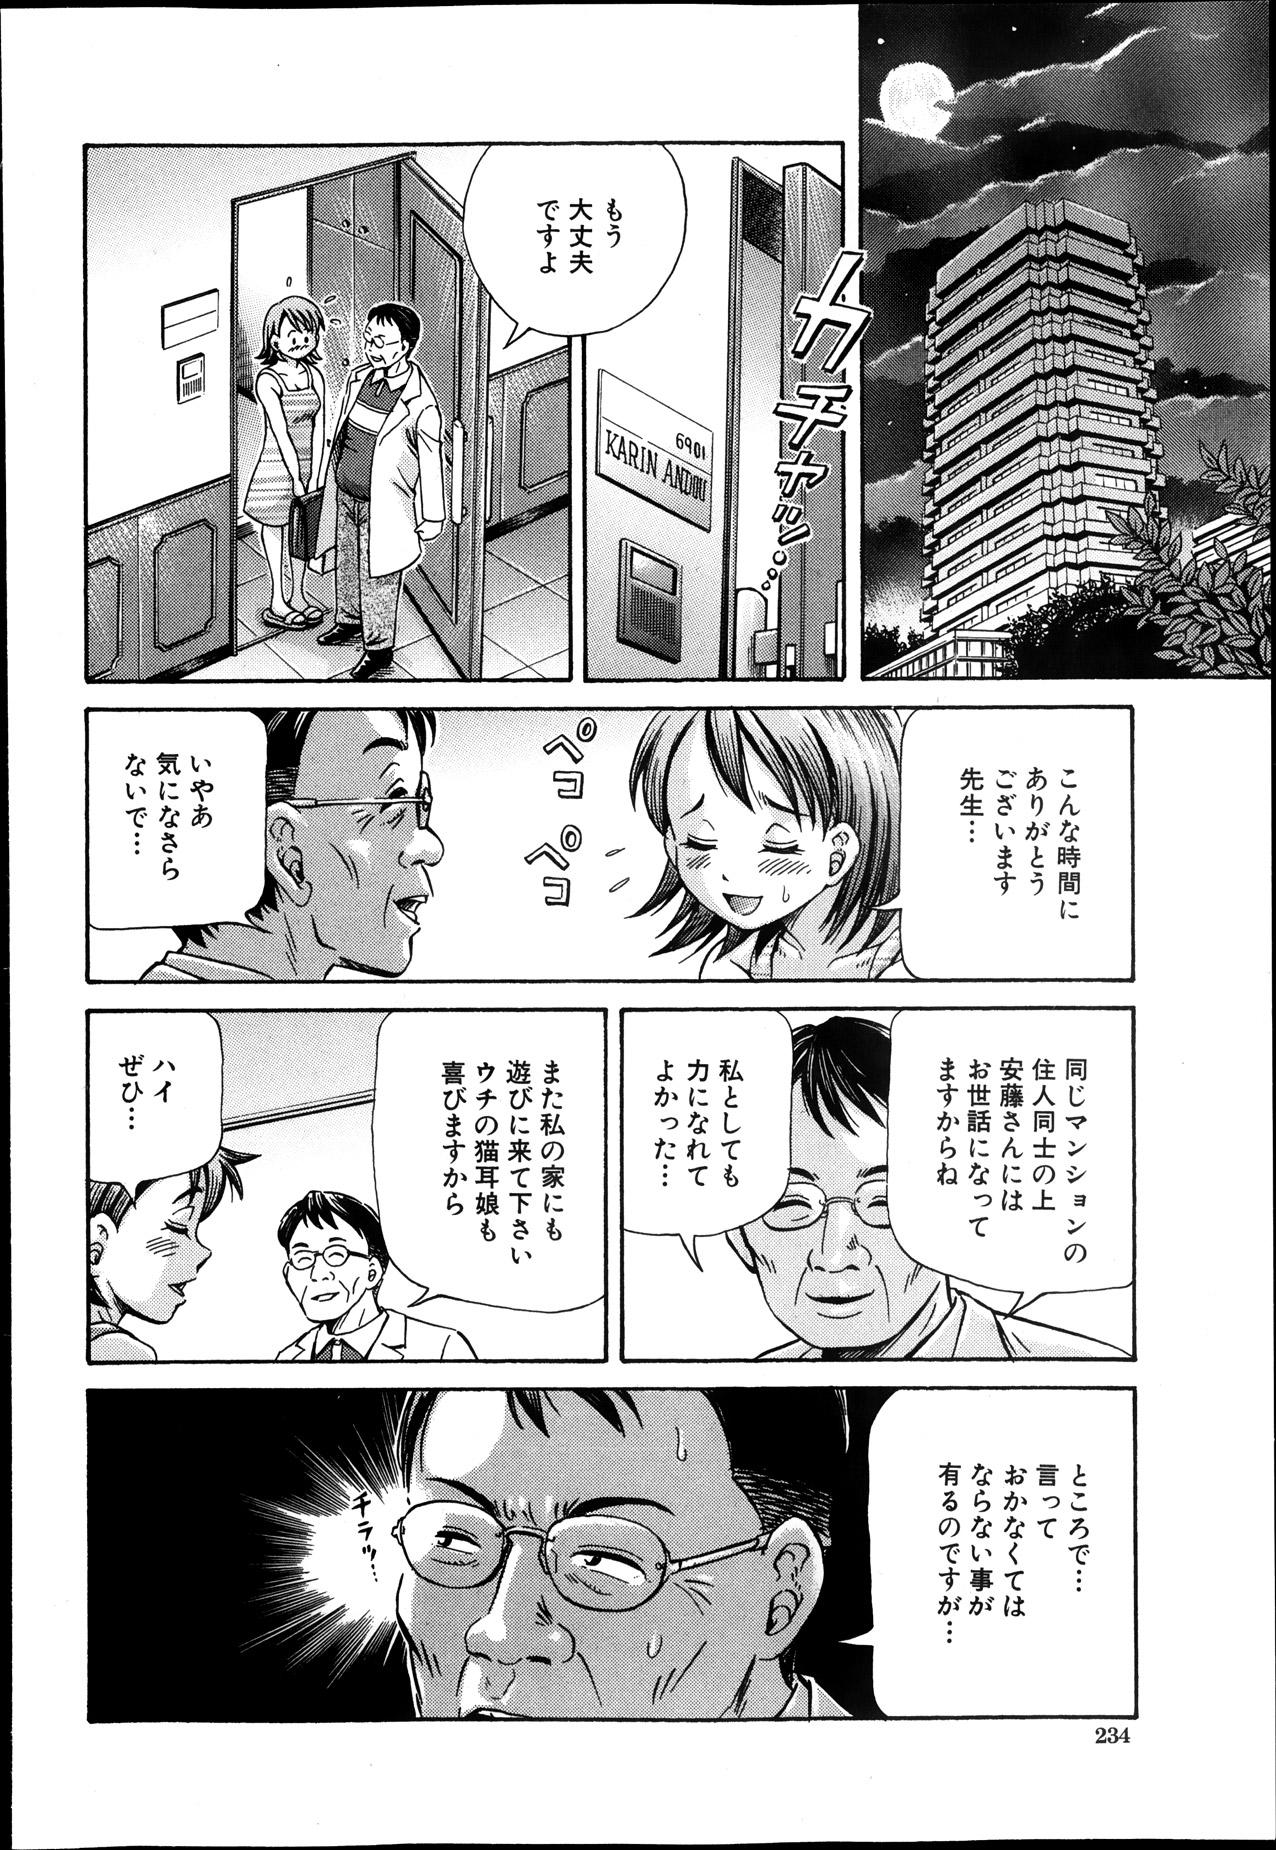 BUSTER COMIC 2013-11 232